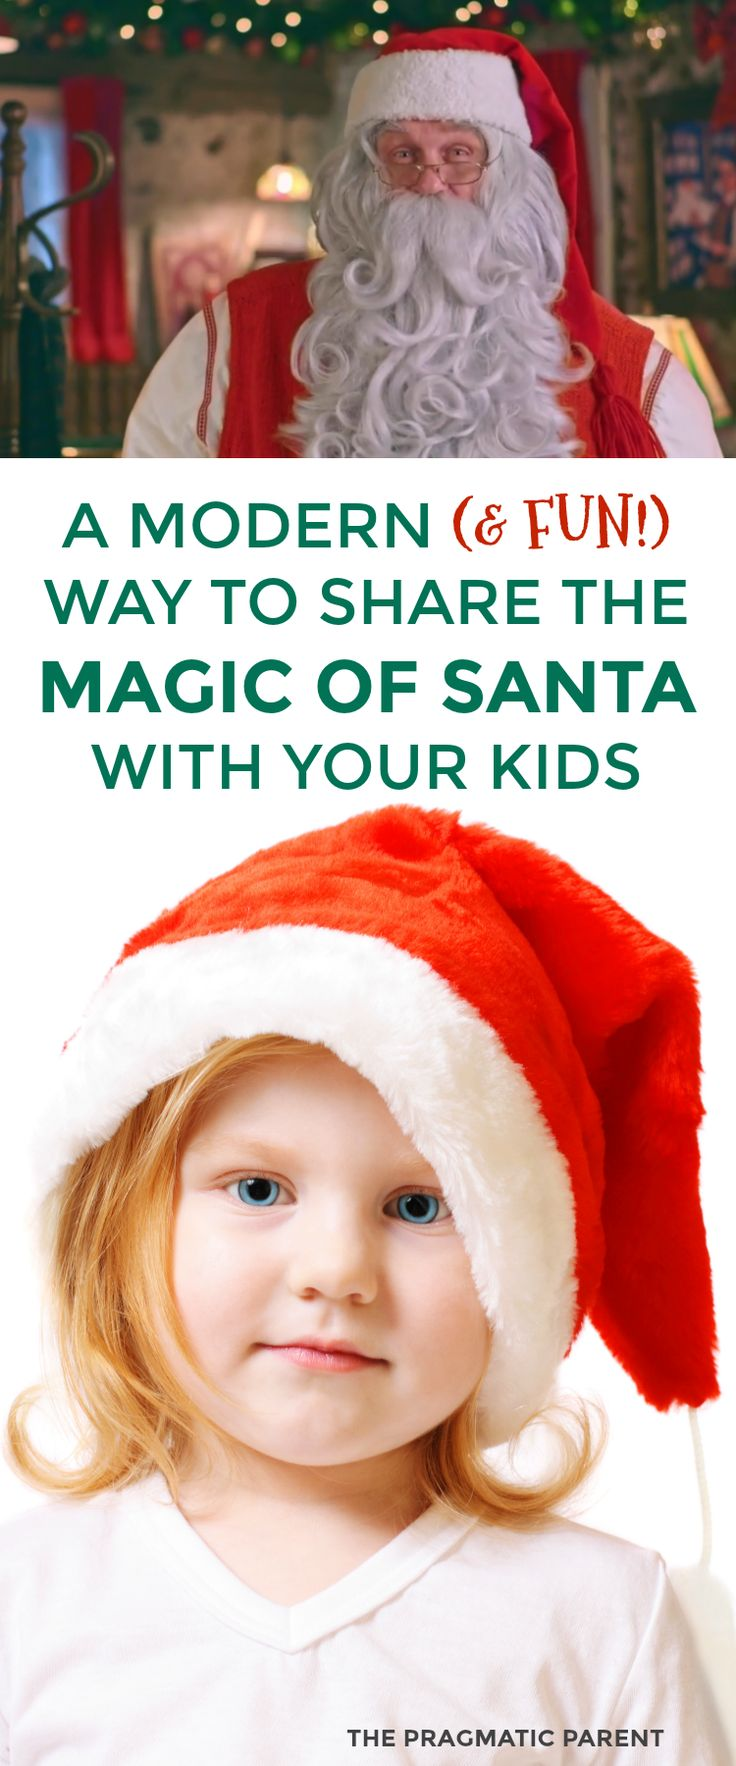 Use the Portable North Pole to Create Special Video Messages and Set Up a Phone Call From Santa. HD Videos of Santa with personalized message for each child. Share in the magic of the holidays with special videos from Santa this Christmas season.  #PNPSanta #Santa #believeinsanta #magicalholidays #lettertosanta